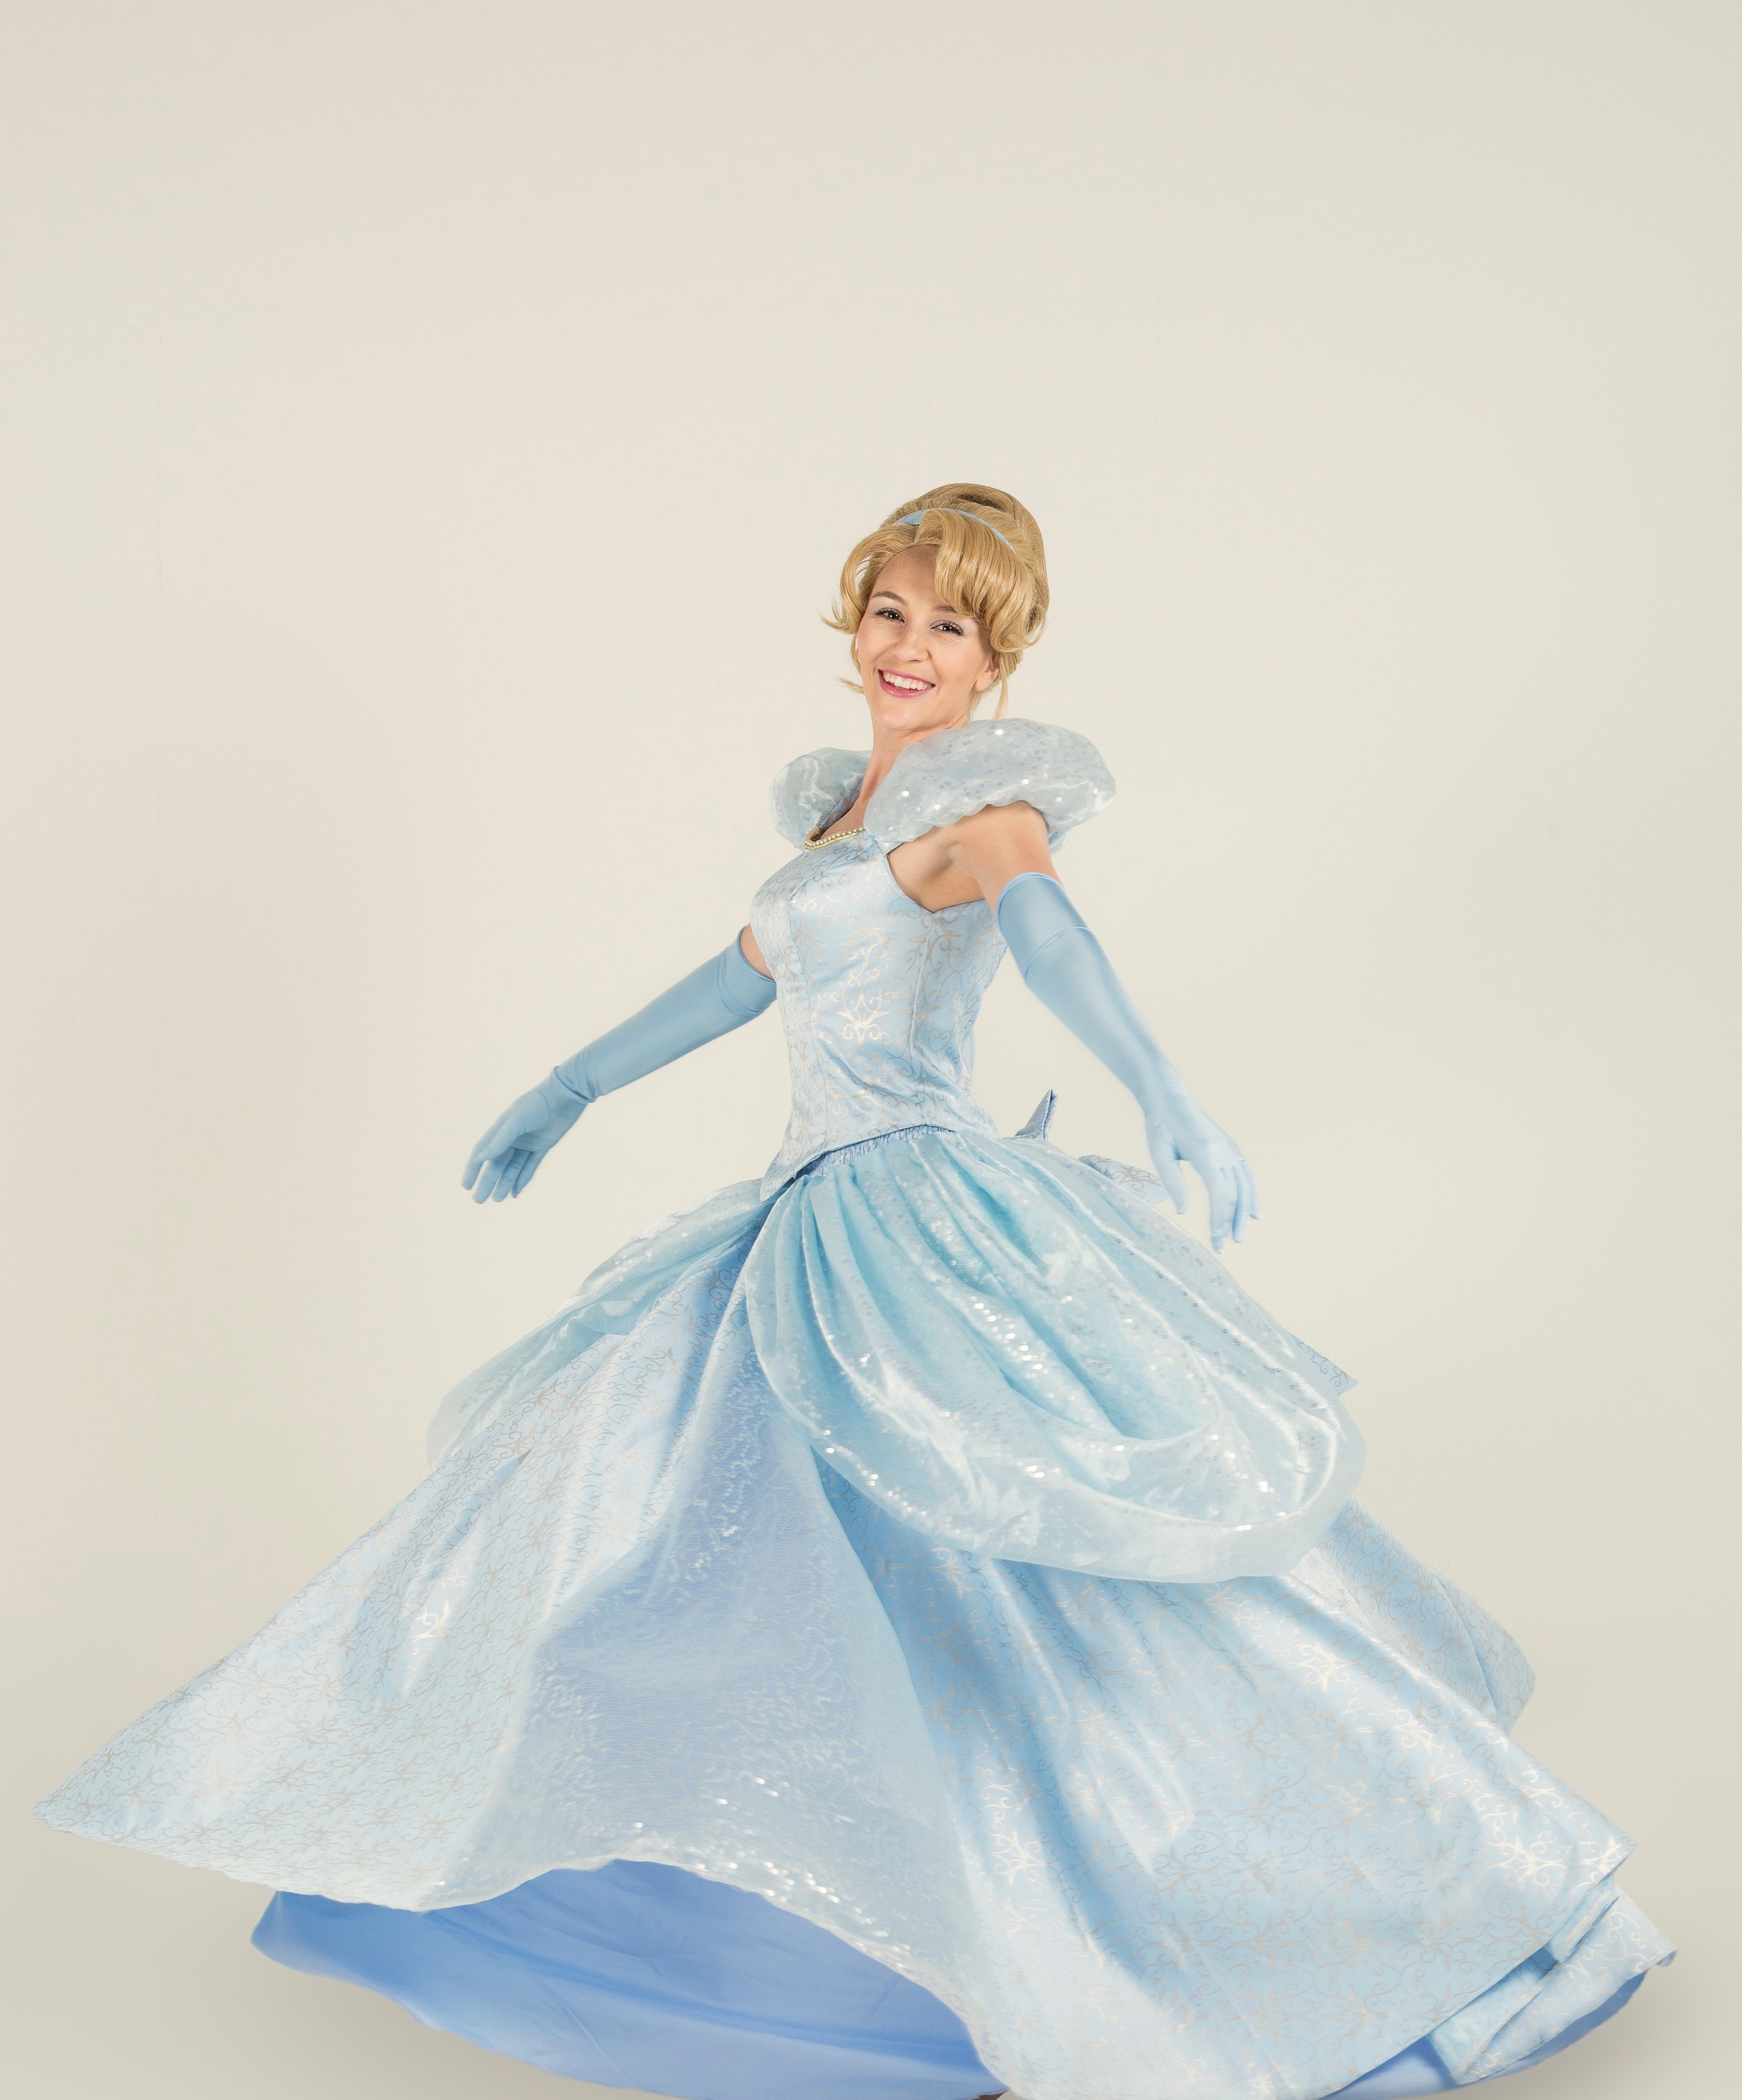 Cinderella    Cinderella will prepare your little princess for her own royal ball! She will sing, dance and make dreams come true.